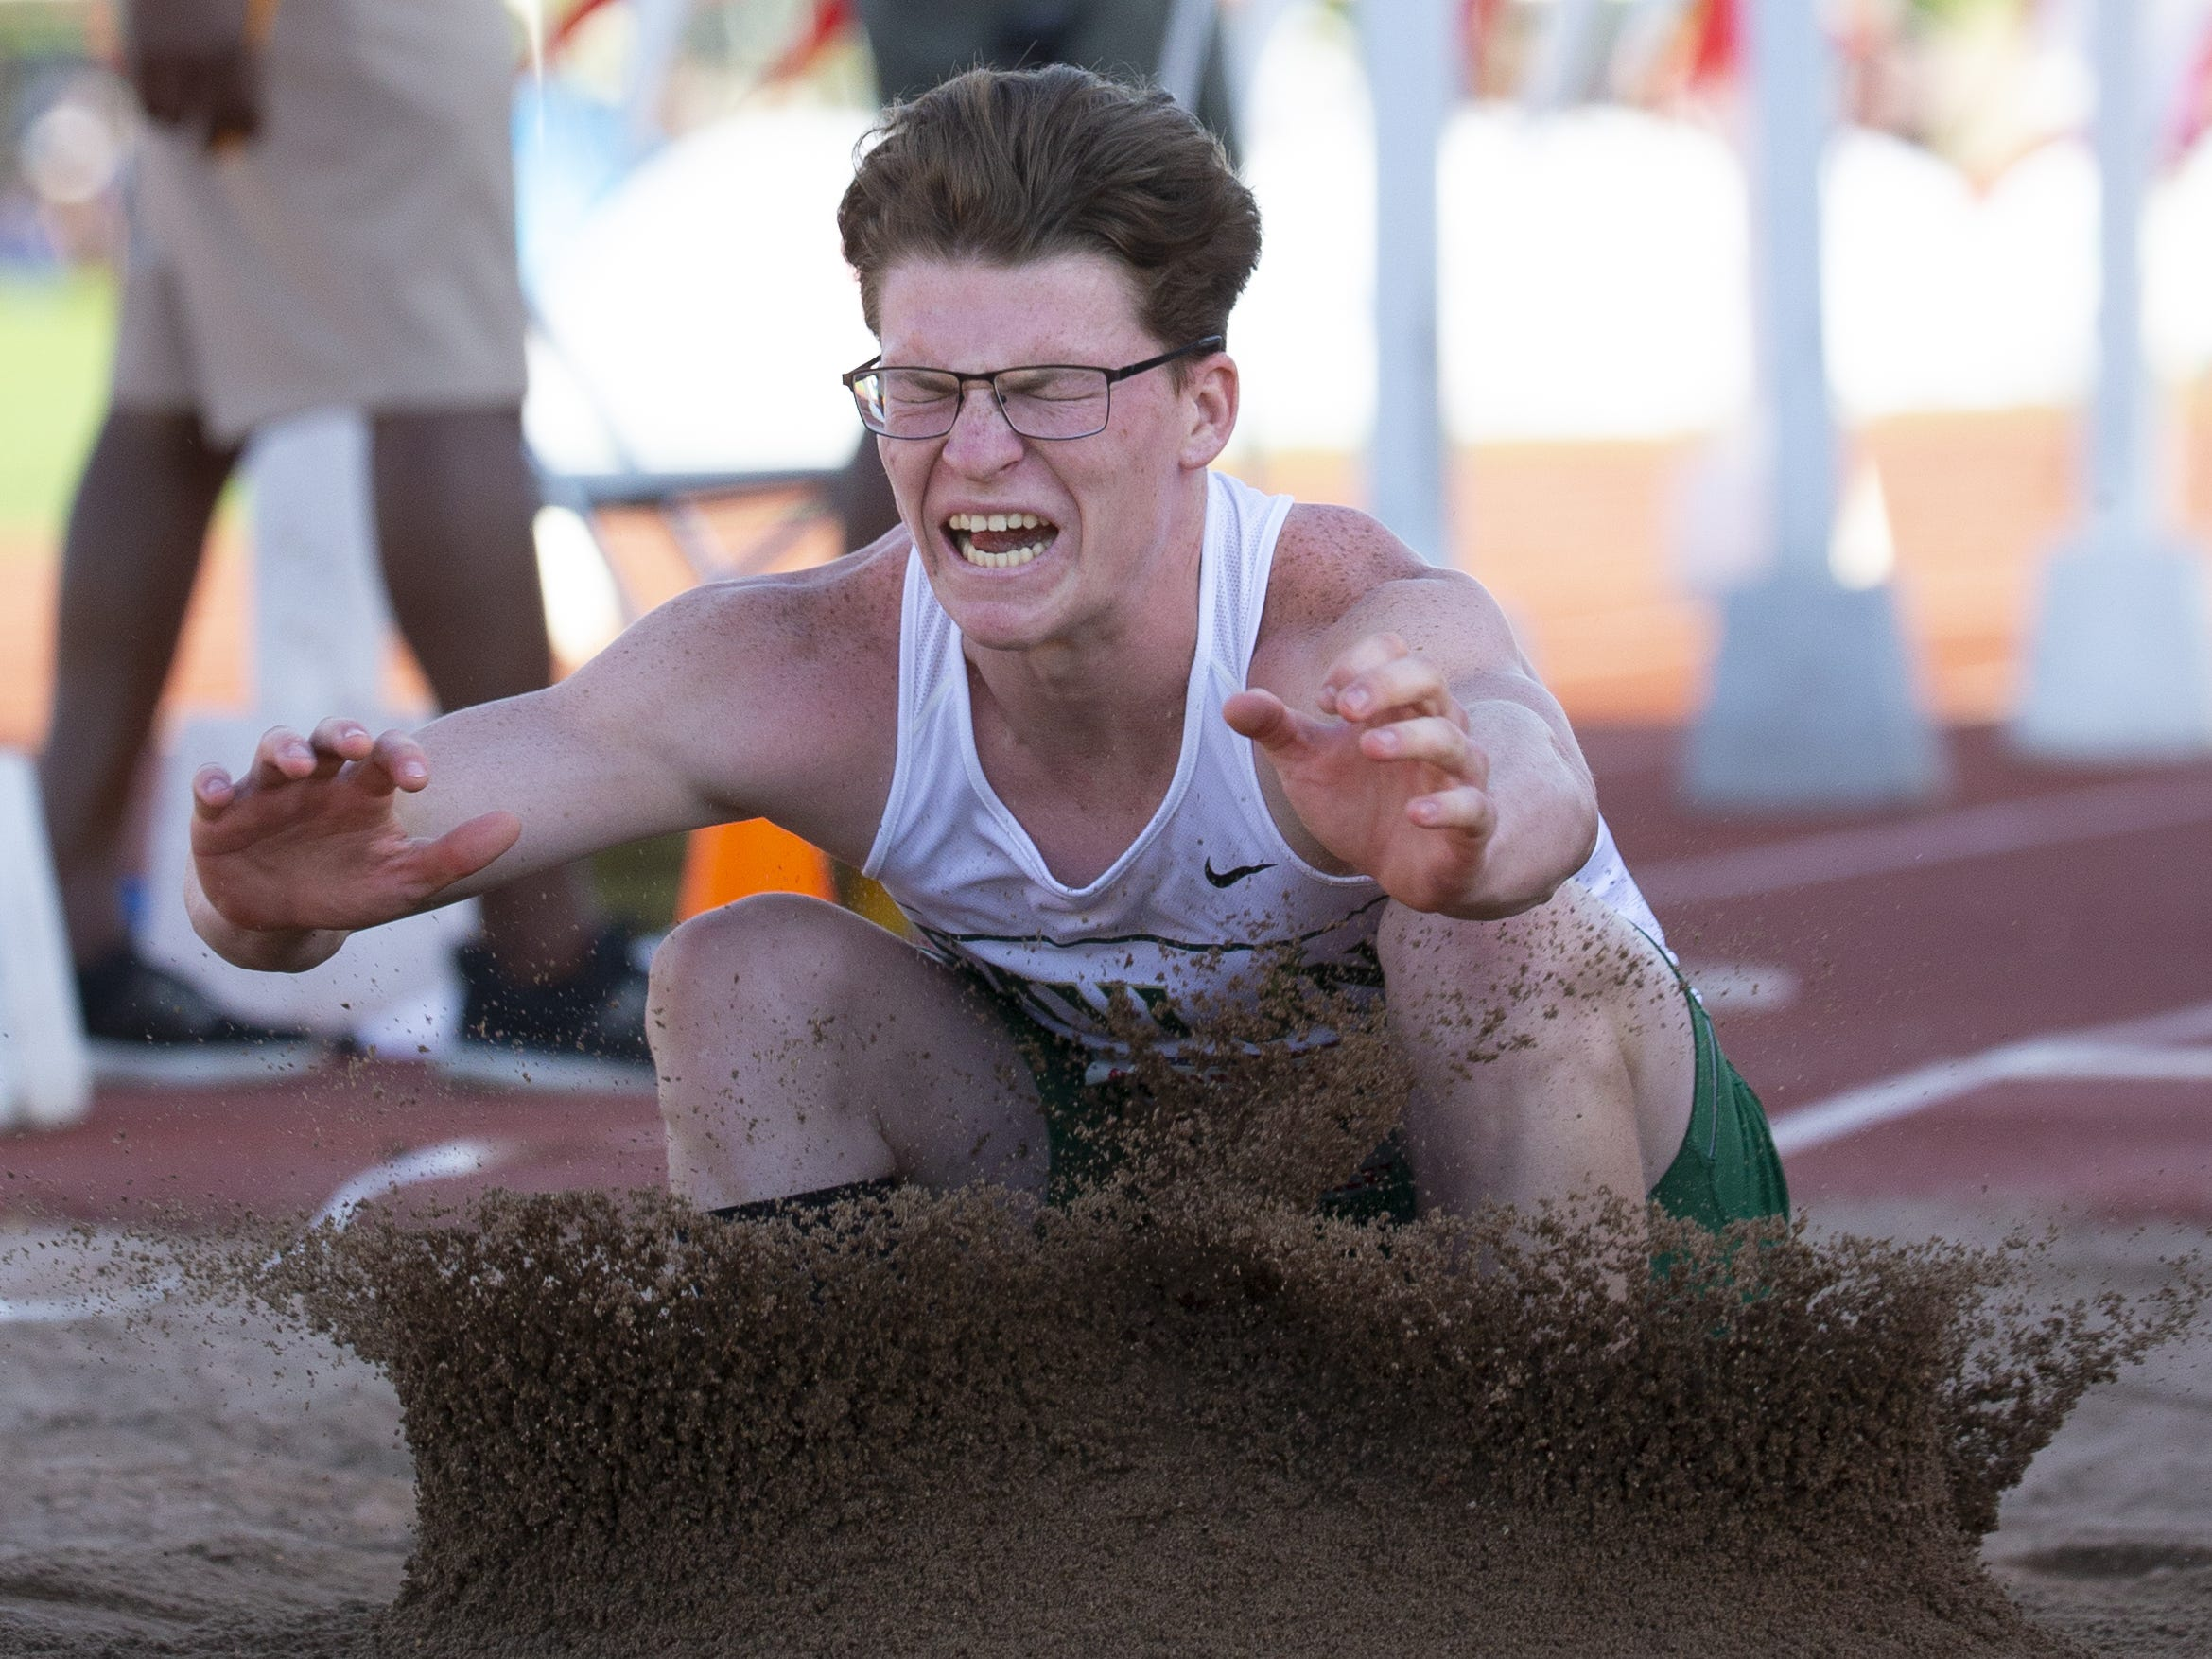 Skyline's Brendan Simpson competes in Boys long jump Div. I during the state track and field meet at Mesa Community college on May 1, 2019.